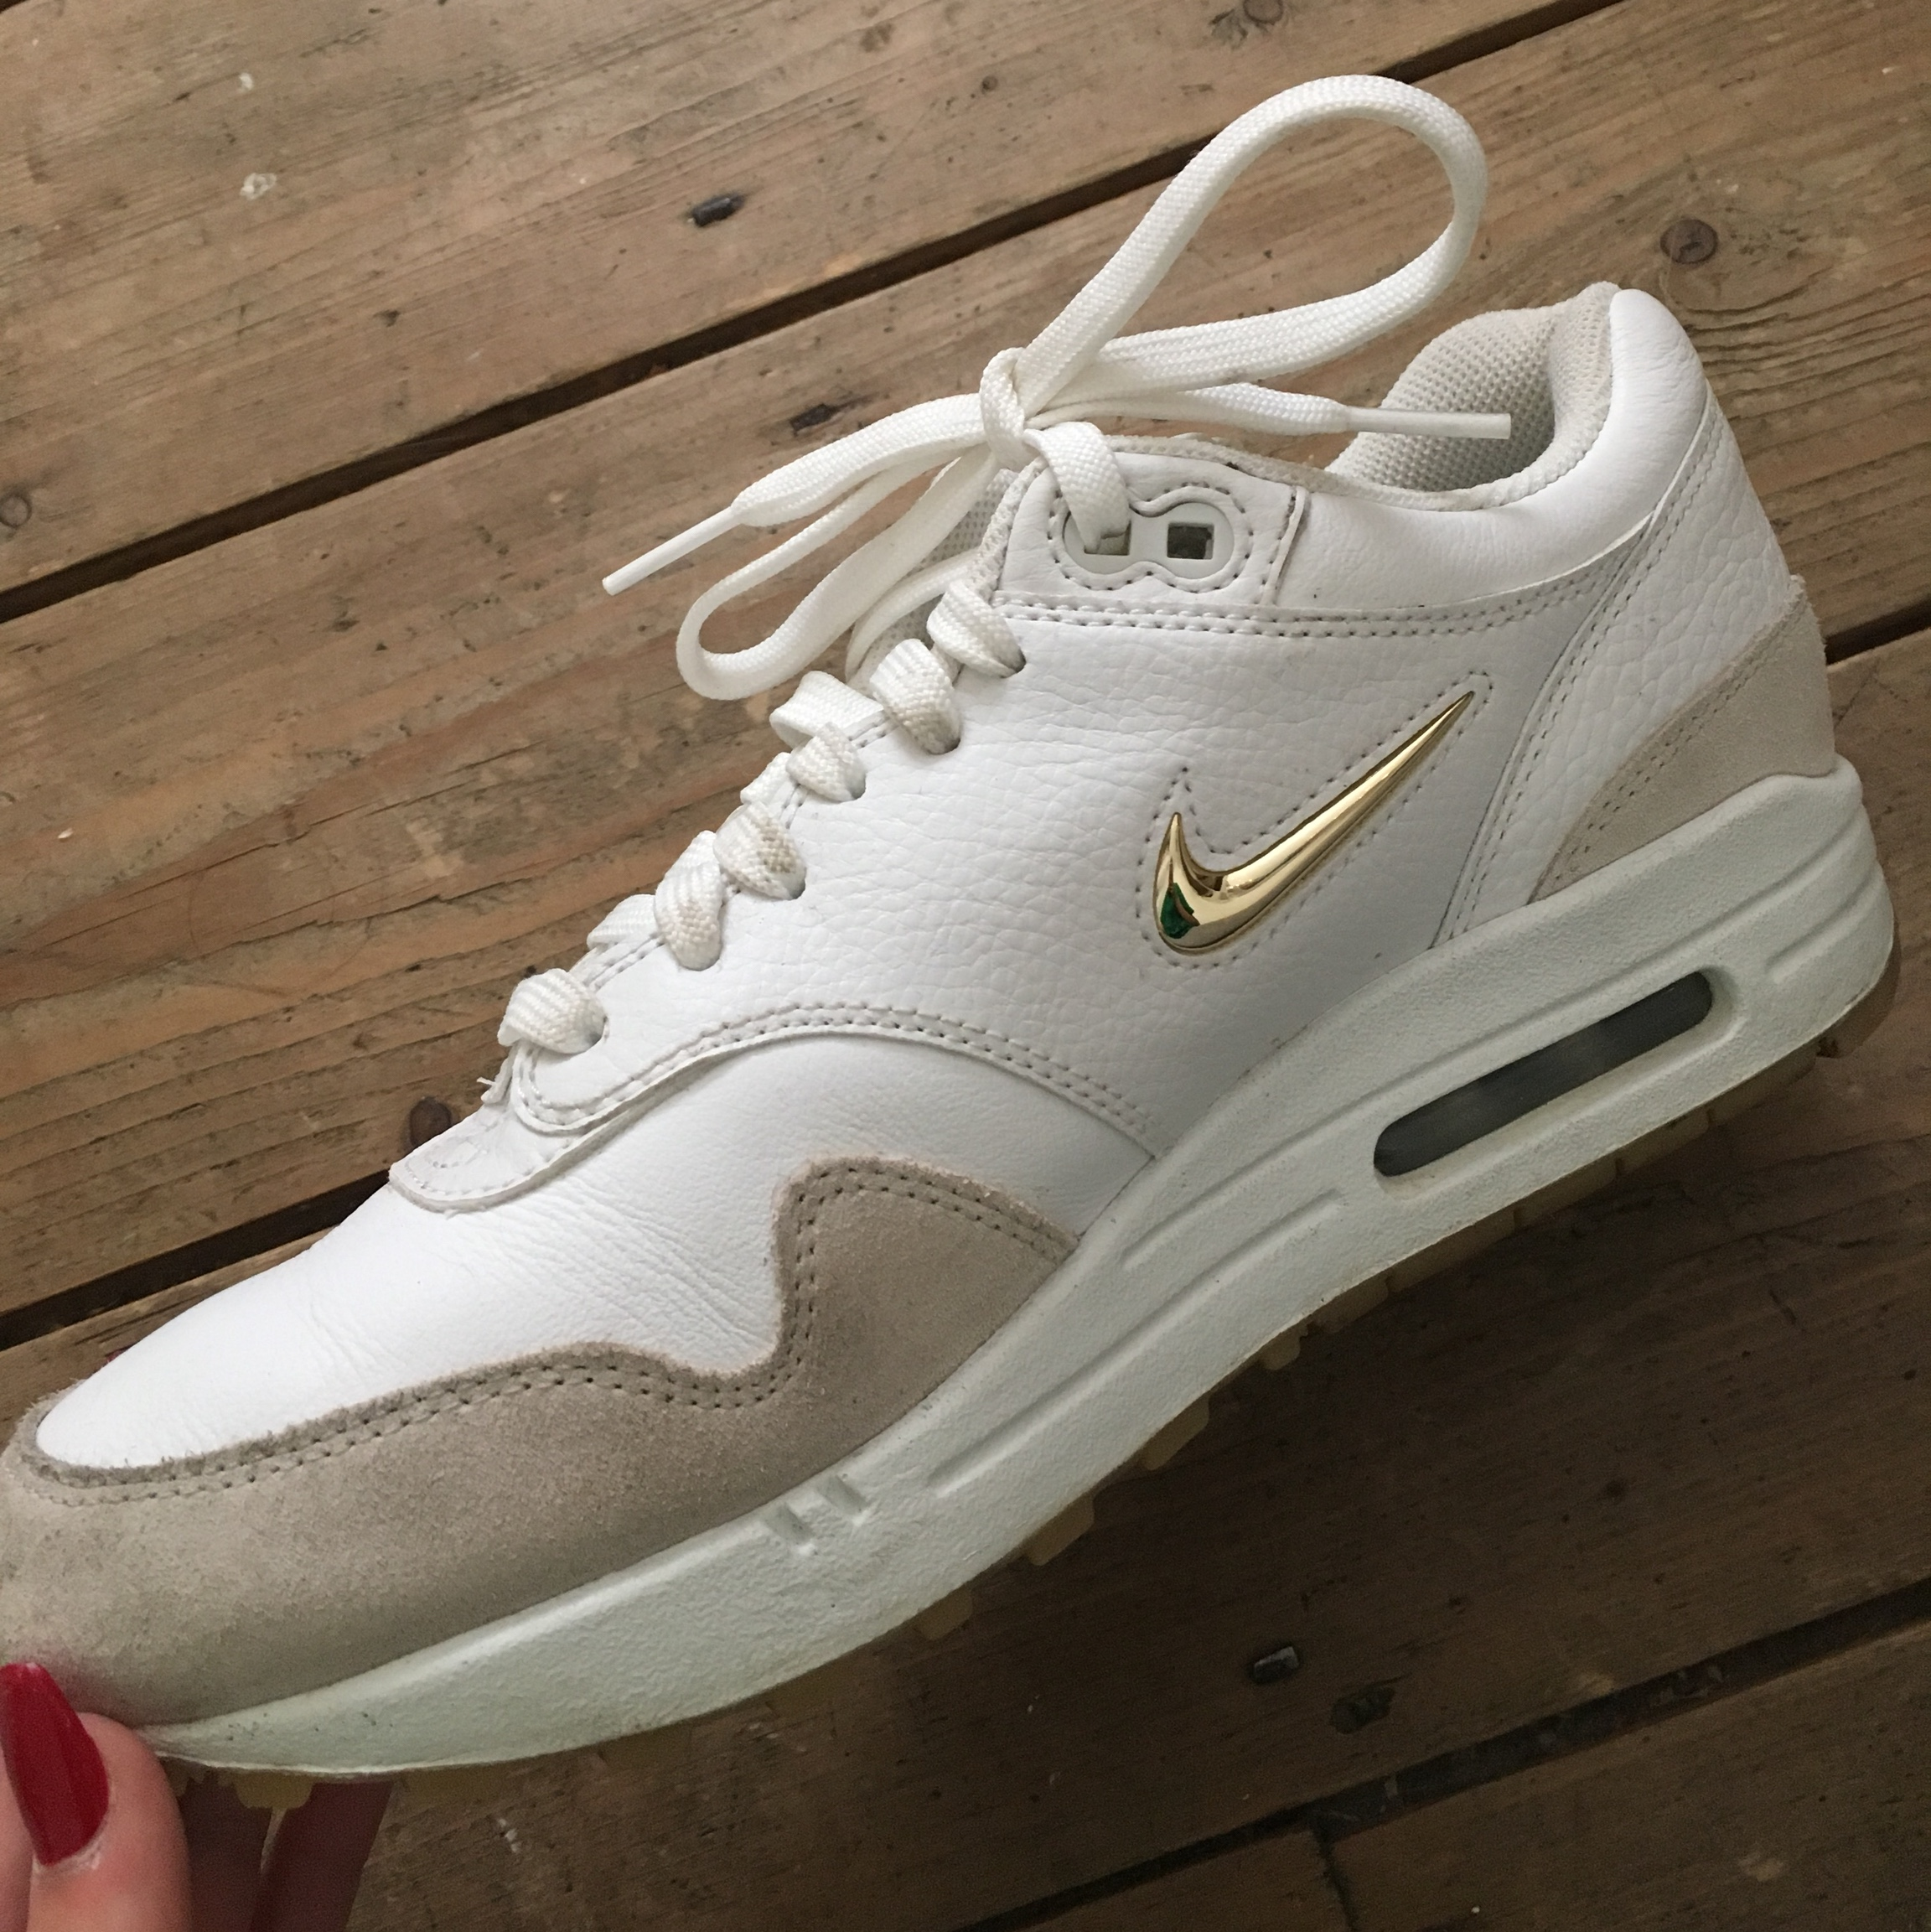 Nike air max 1 Jewel white with gold tick size 6 in Depop